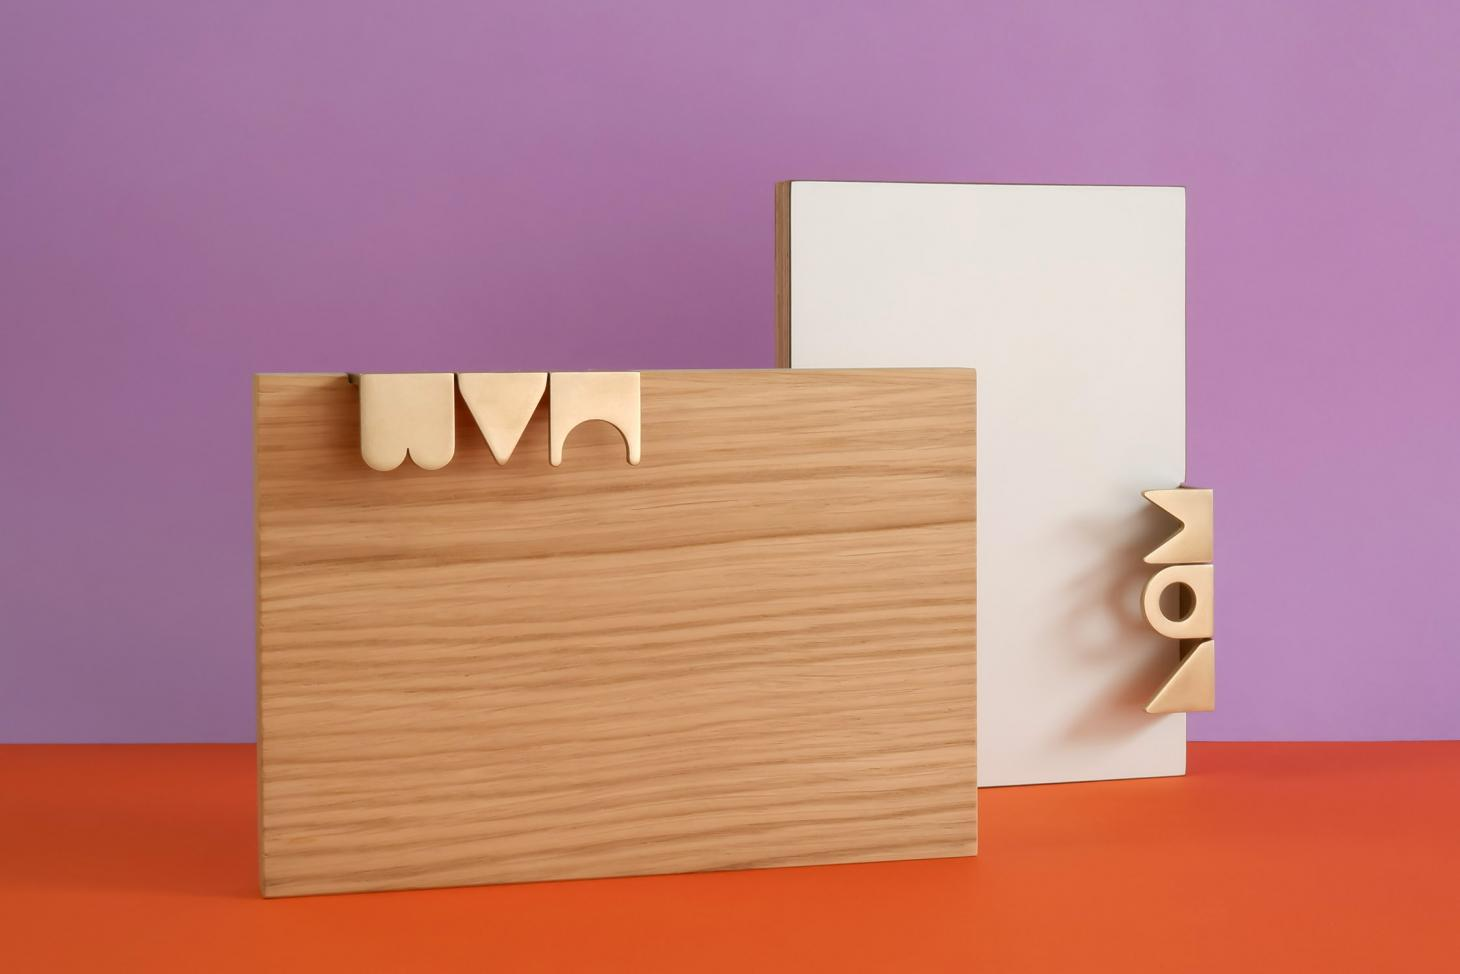 Design Hooks by Adam Nathaniel Furman